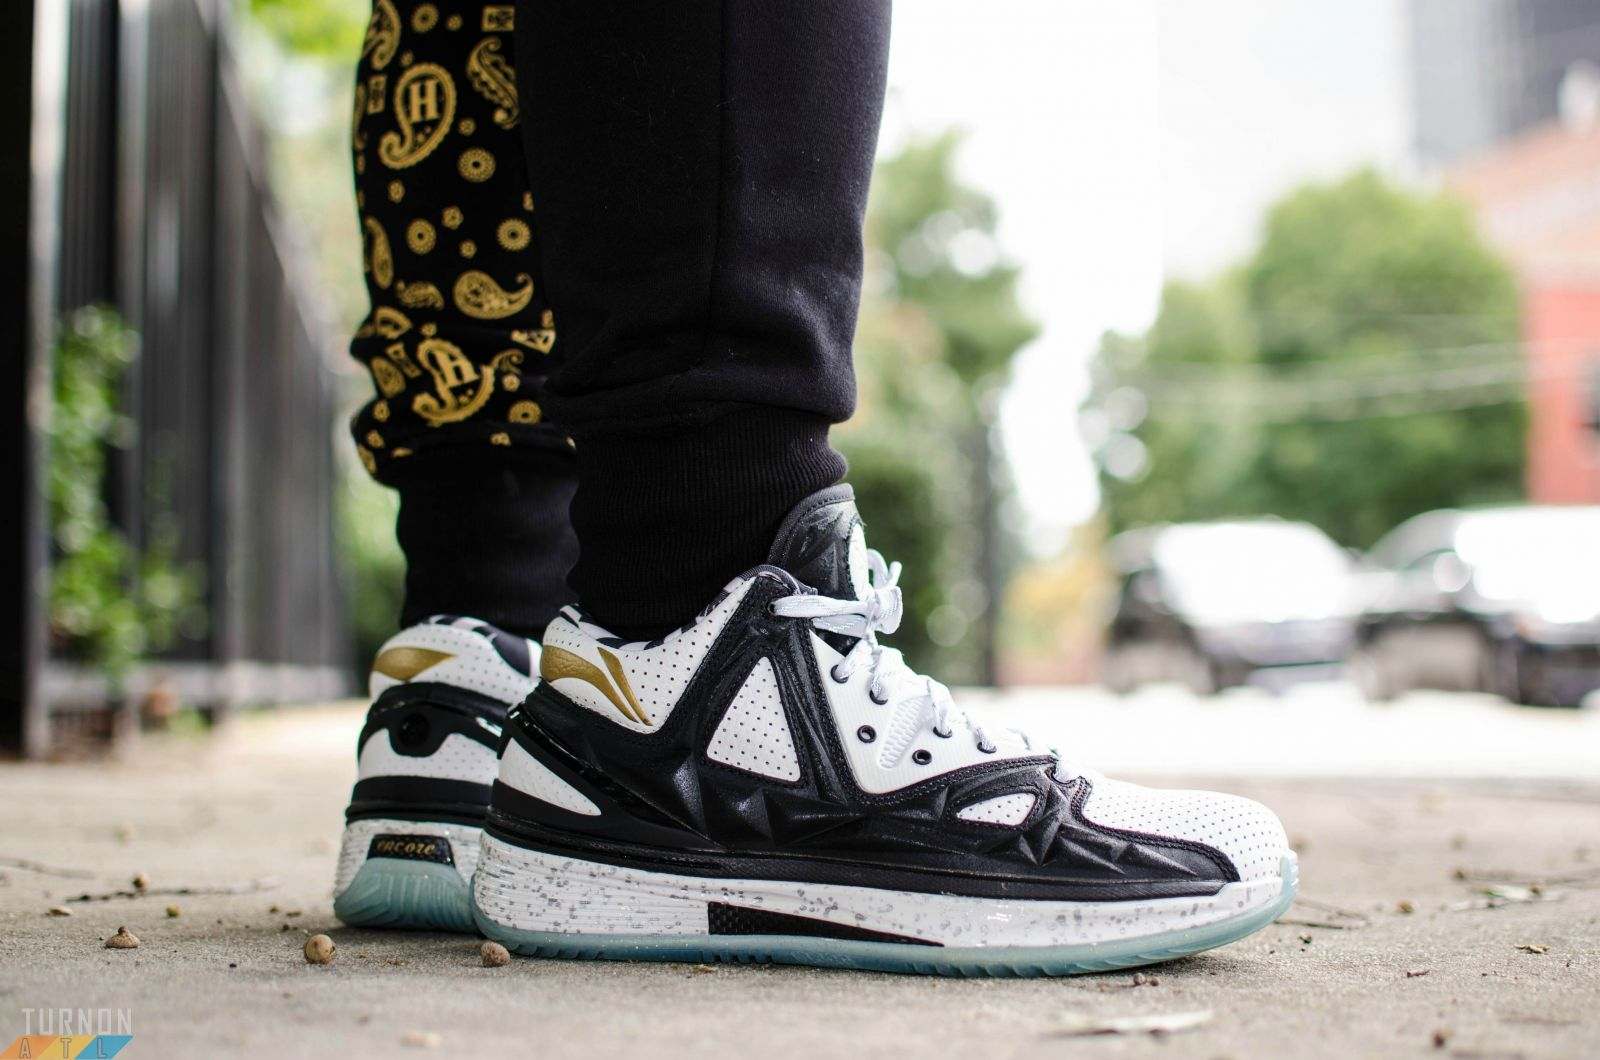 Li-Ning Way of Wade 2.5 Encore